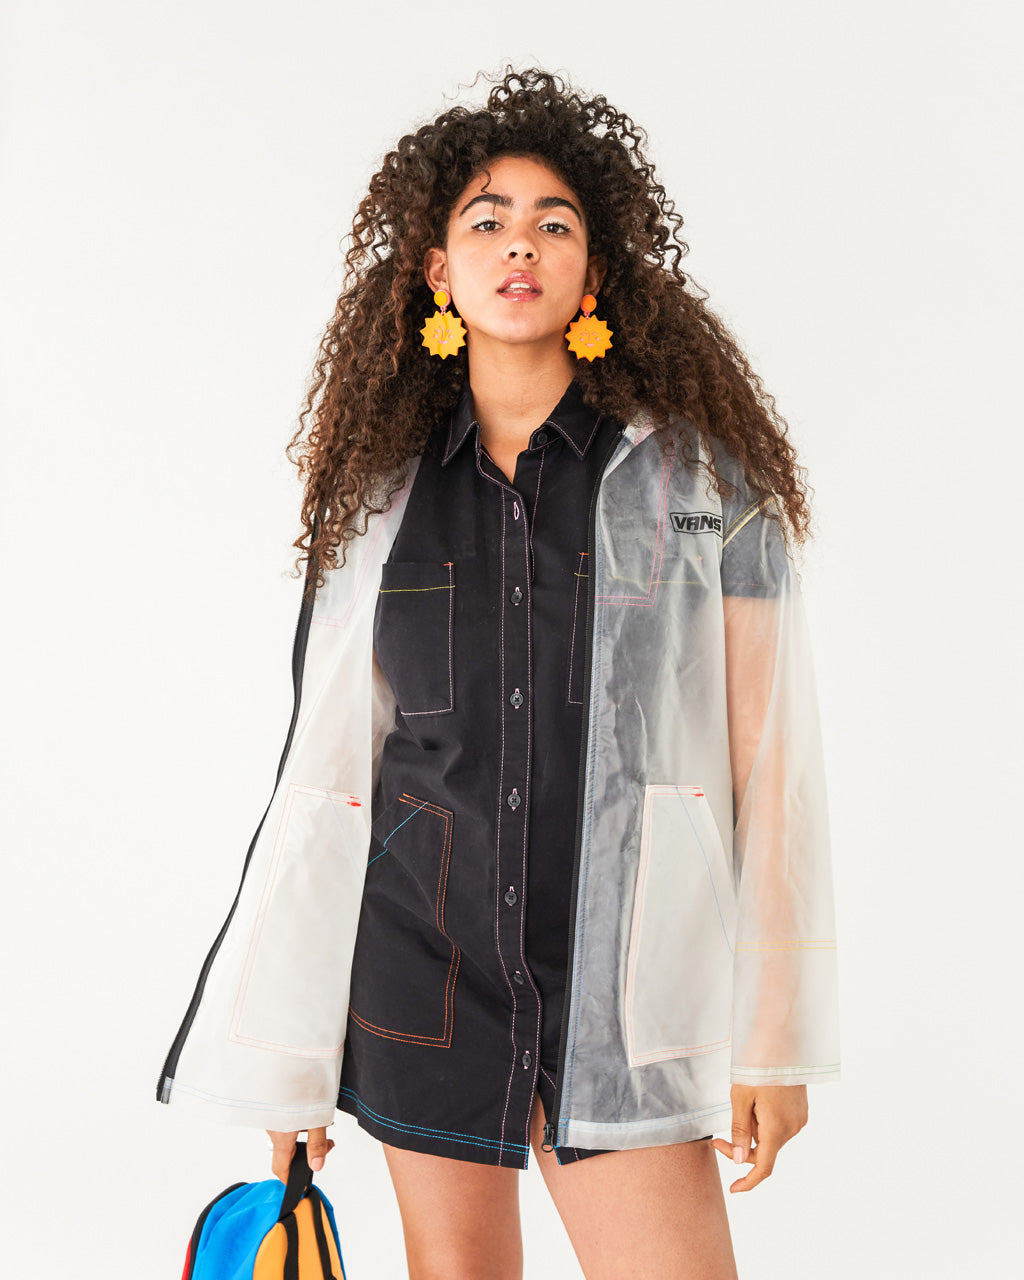 clear rain jacket with black zipper trim paired with a black jean dress shown on model